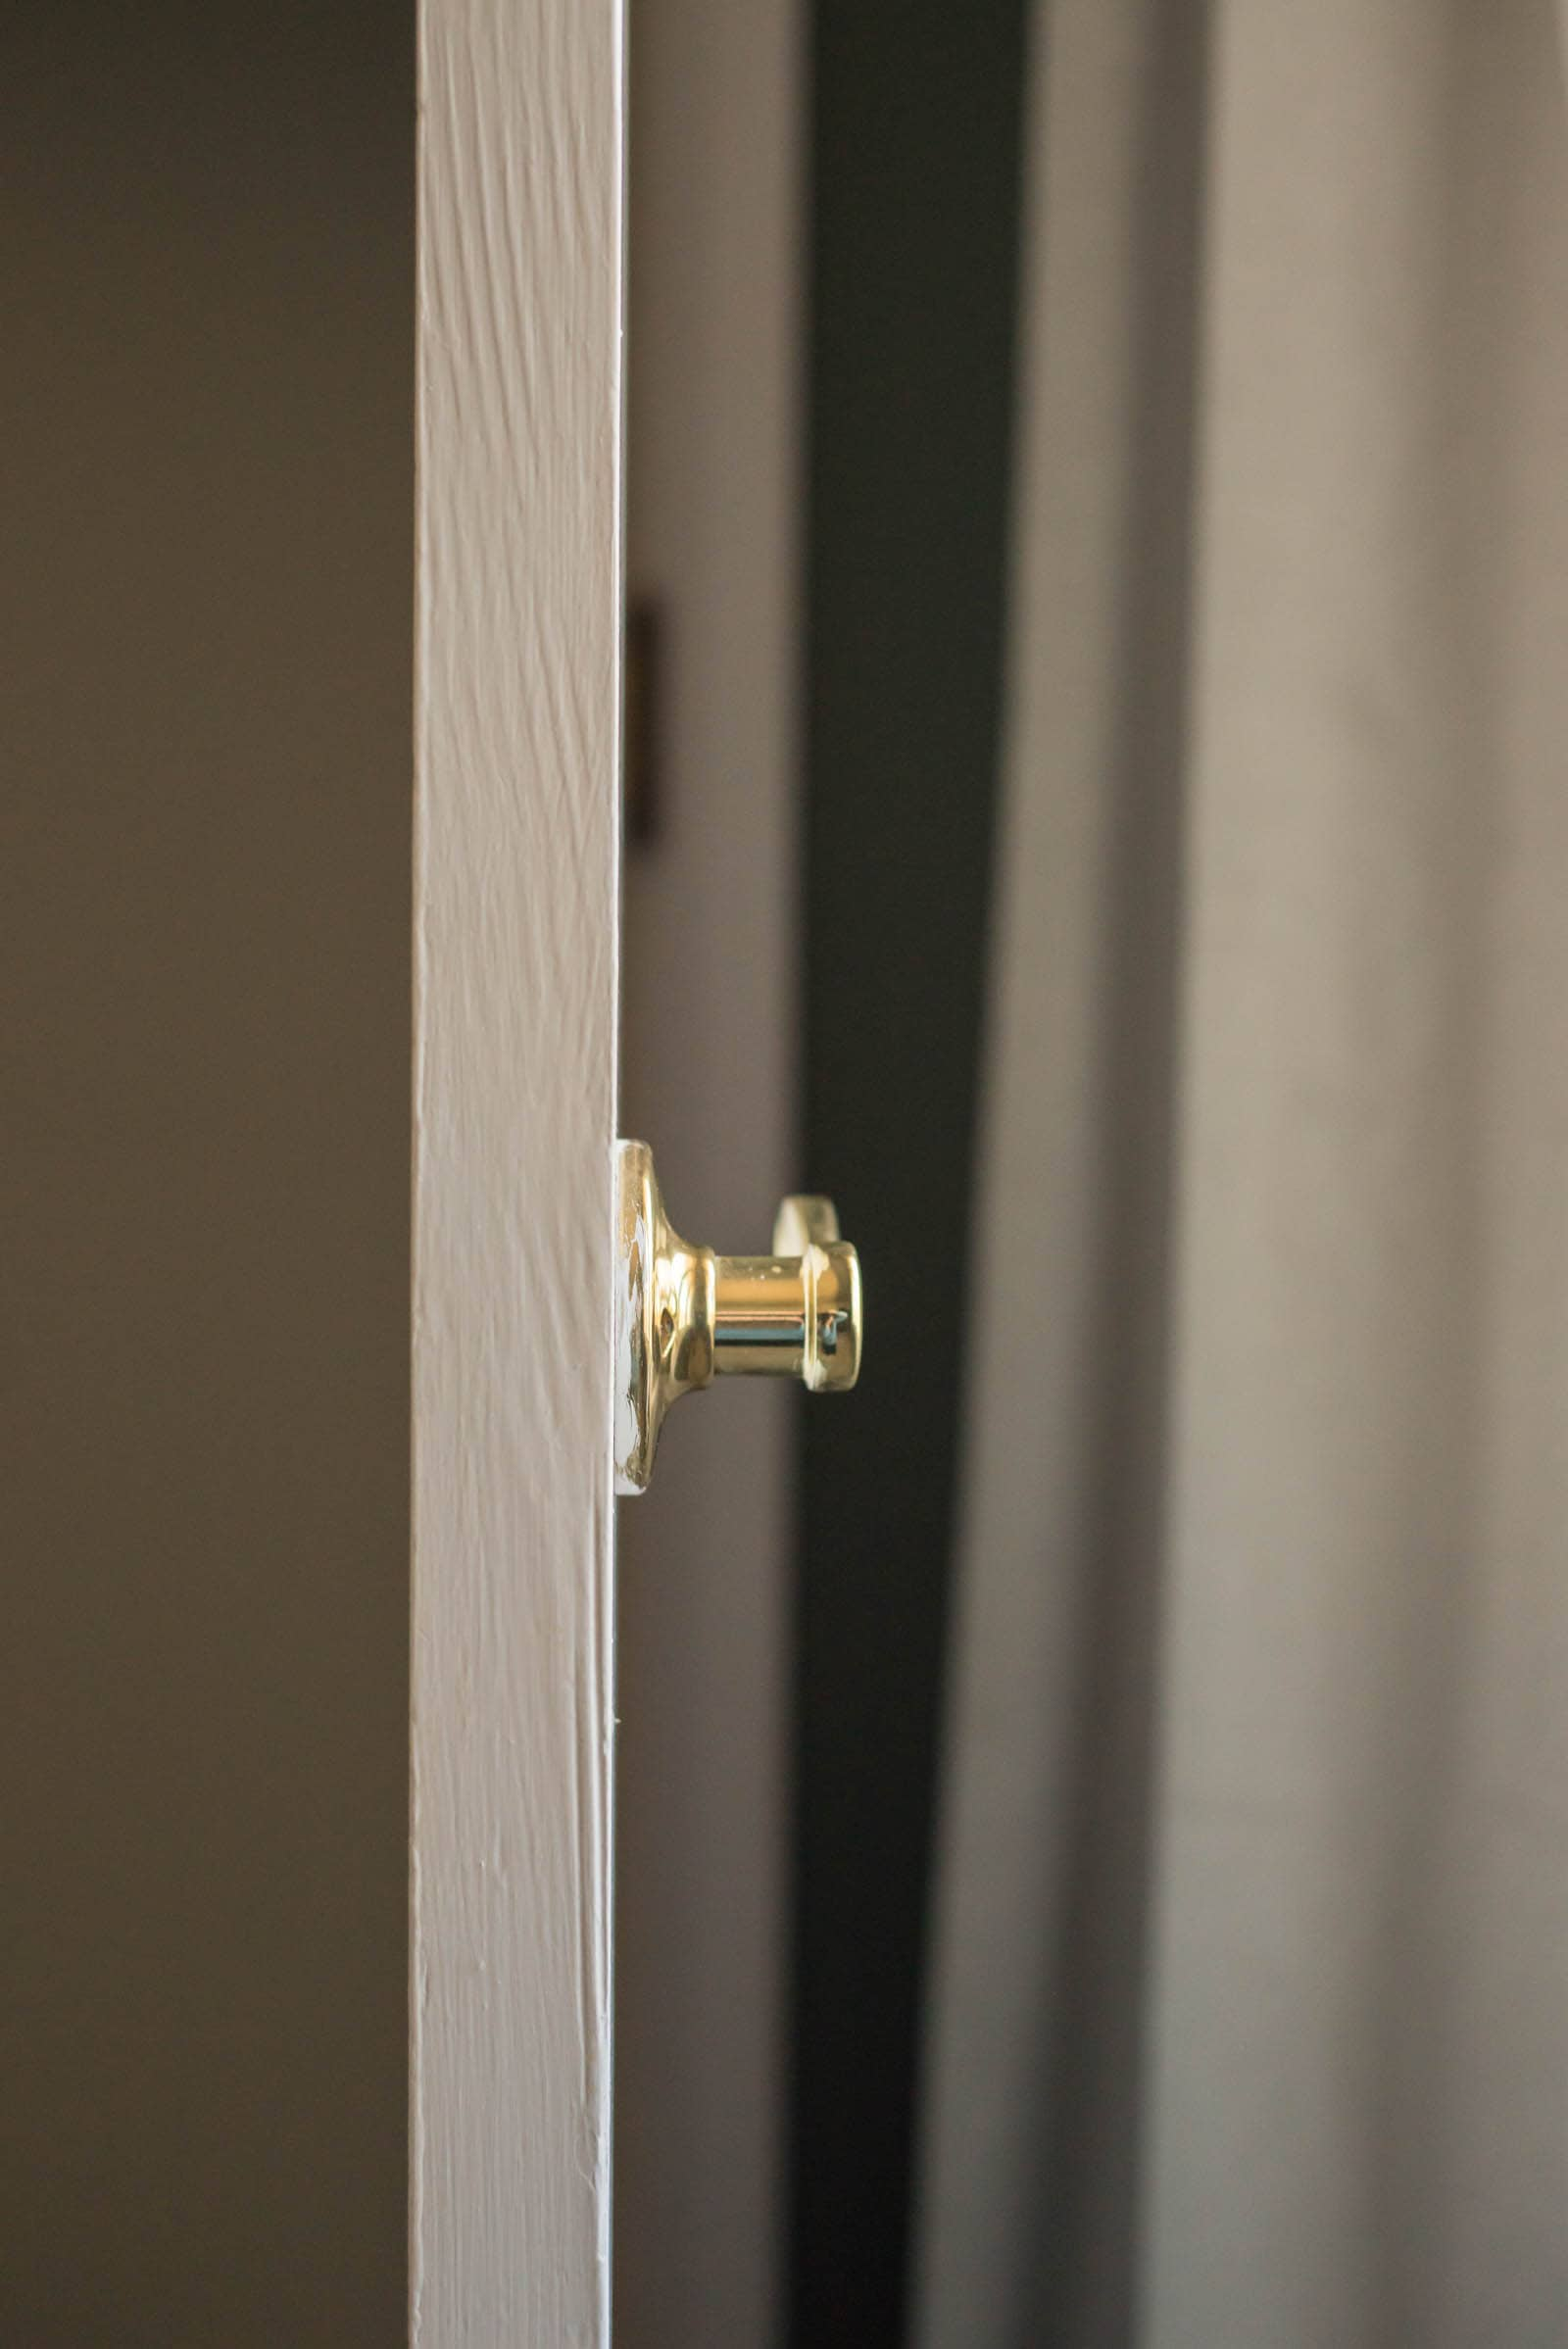 Showing a dummy door knob